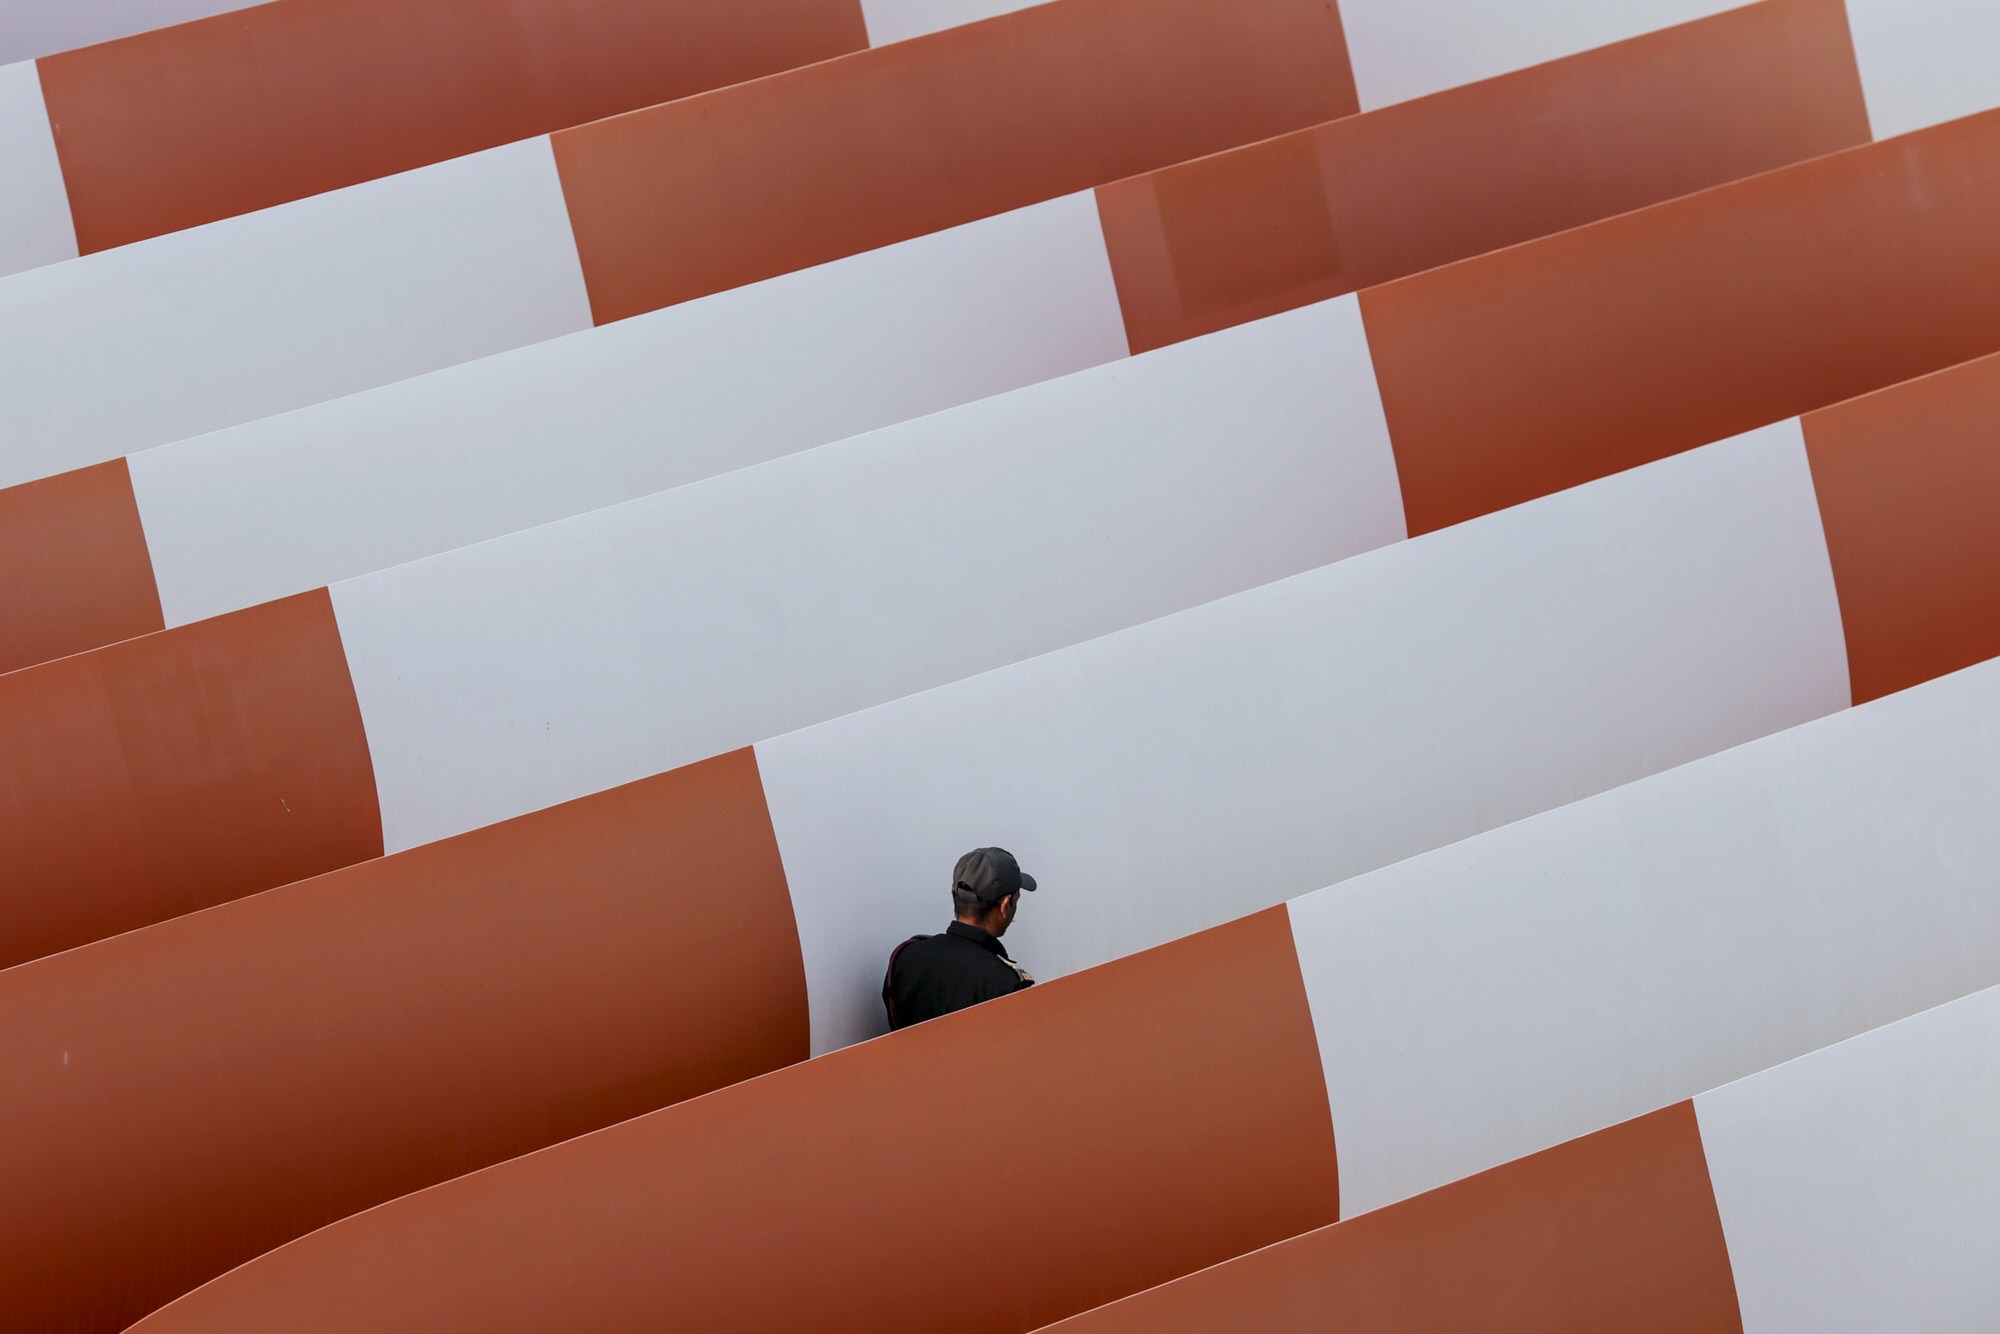 Bloomberg's Best Photos 2014: A security guard walks between finished turbine blades sitting in an outdoor storage area at the Suzlon Energy Ltd. rotor blade manufacturing plant in Bhuj, India, on Friday, March 28, 2014. Suzlon, the fifth-largest turbine maker, has won approval from shareholders to re-appoint founder Tulsi Tanti as managing director. Photographer: Dhiraj Singh/Bloomberg